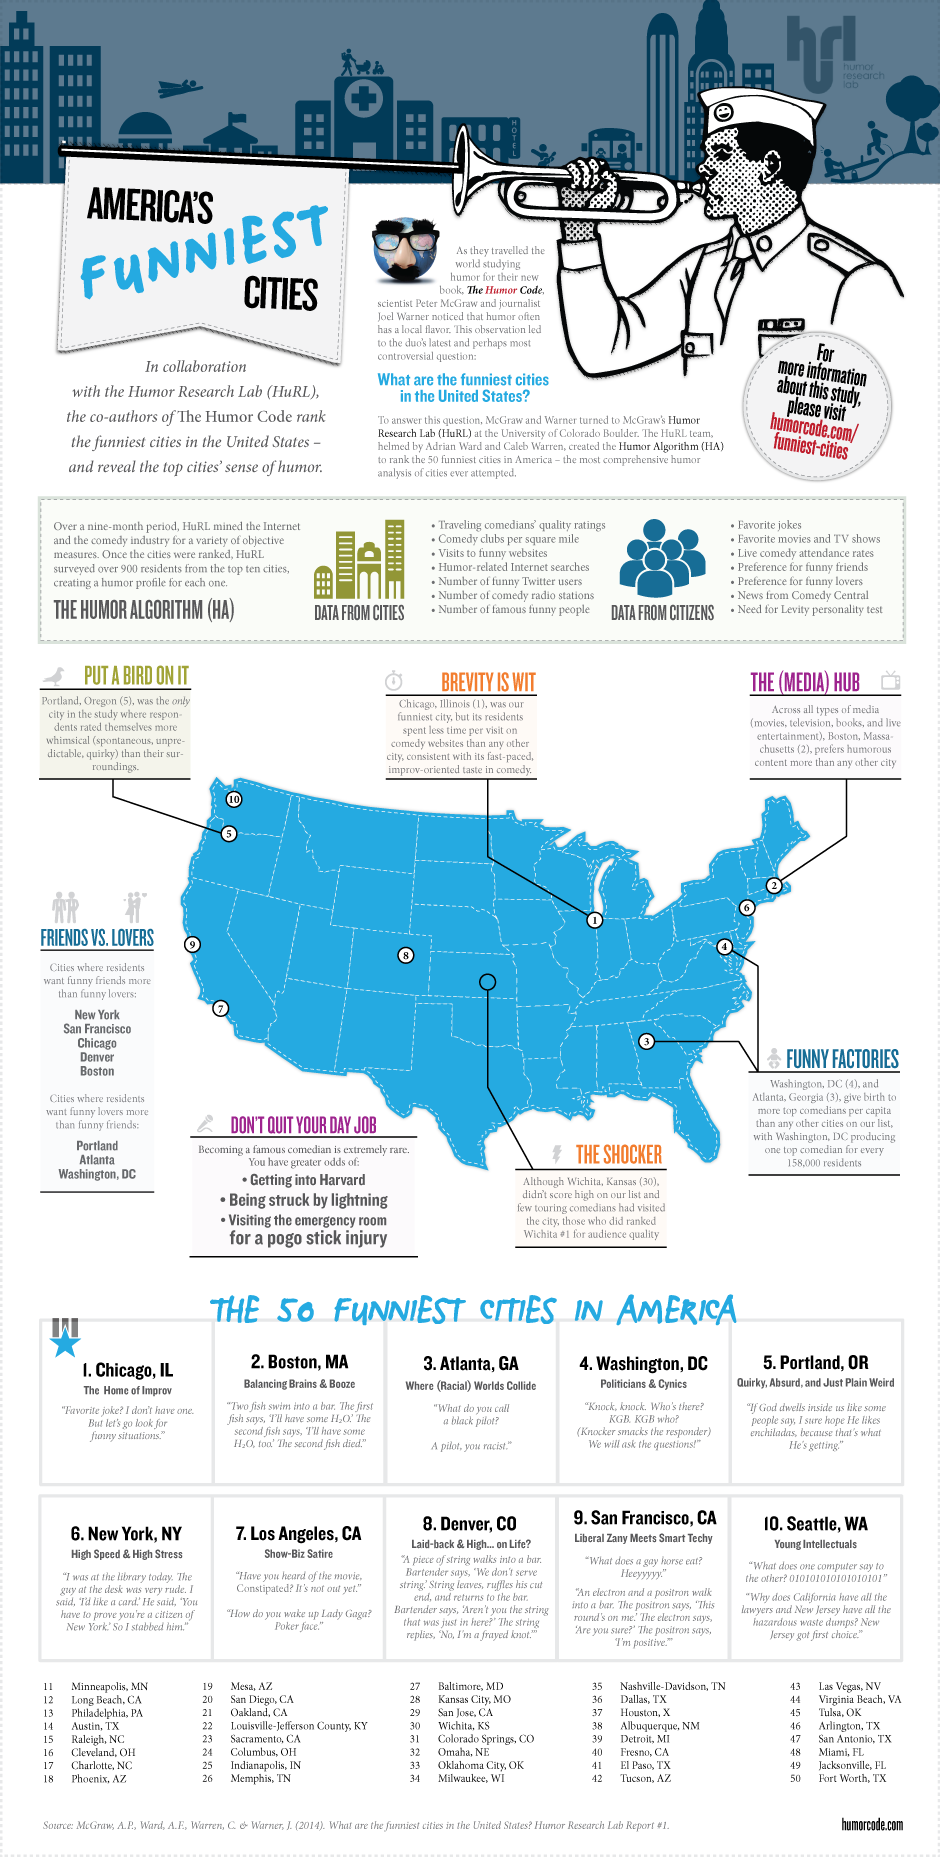 50 Funniest Cities in America infographic